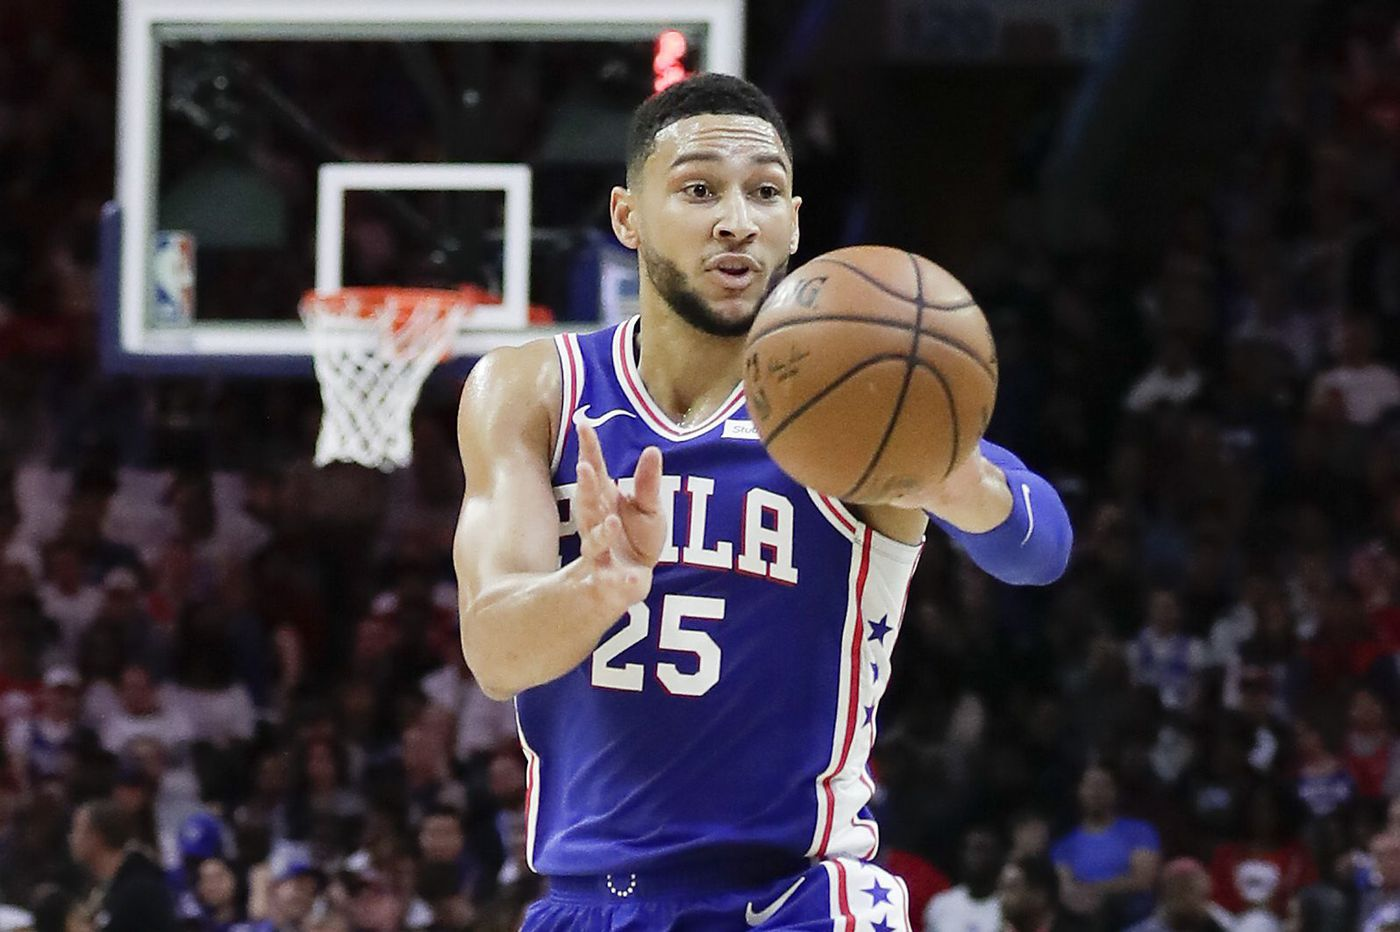 Sixers' Ben Simmons out for Tuesday's game vs. Pistons